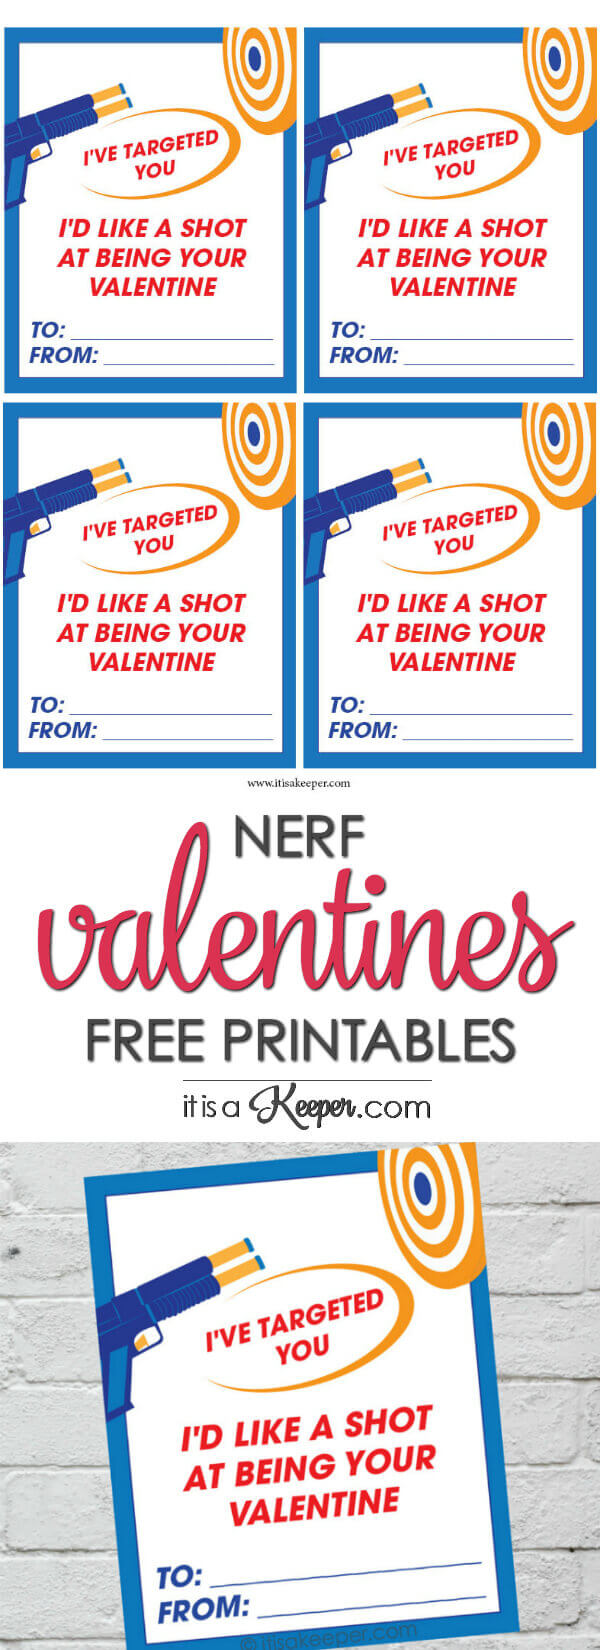 photo about Nerf Logo Printable titled Nerf Valentine Playing cards Printable It Is a Keeper